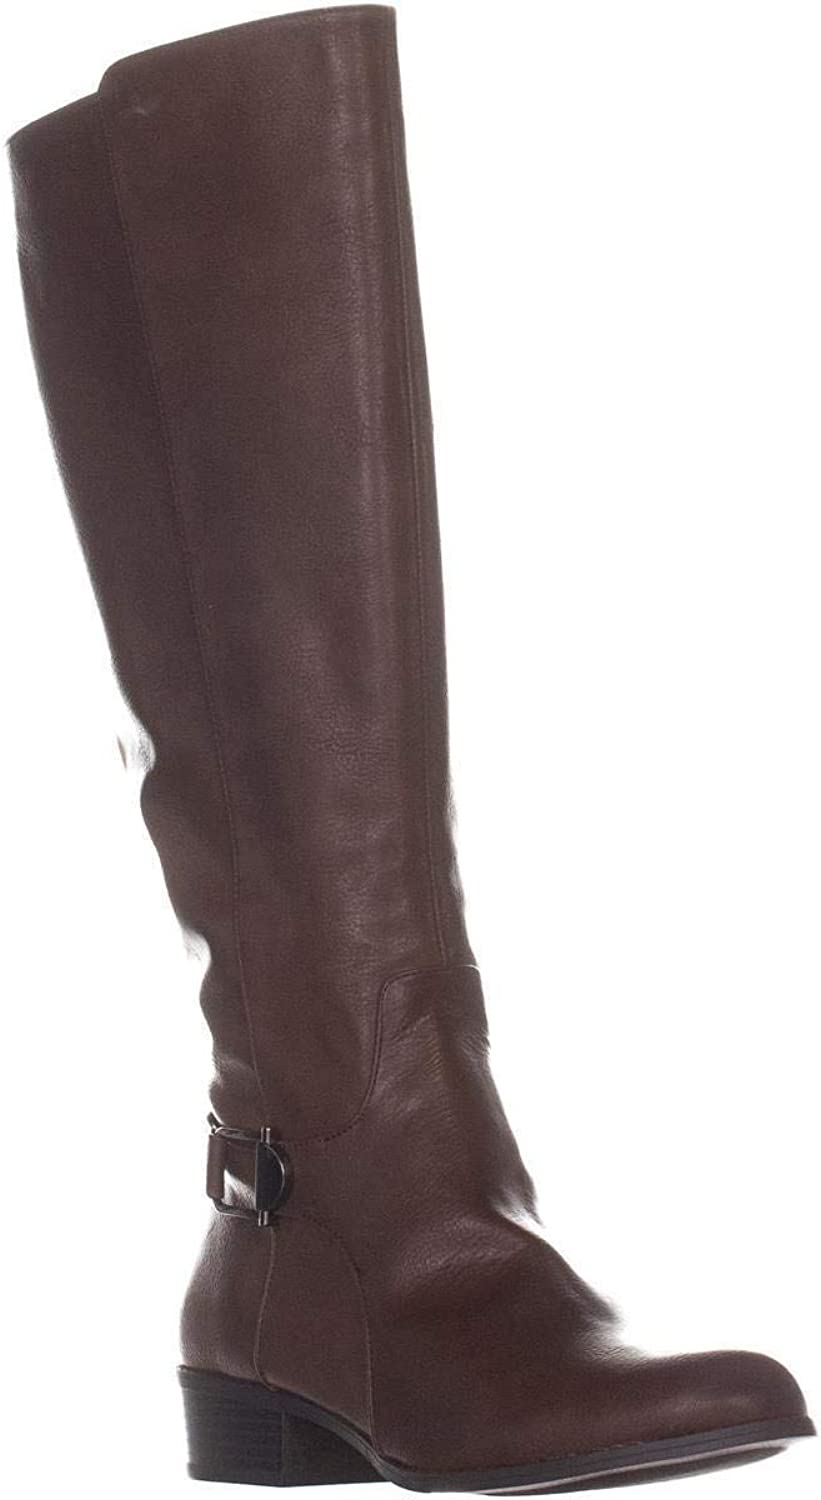 Alfani A35 Kallumm Wide Calf Riding Boots, Cognac